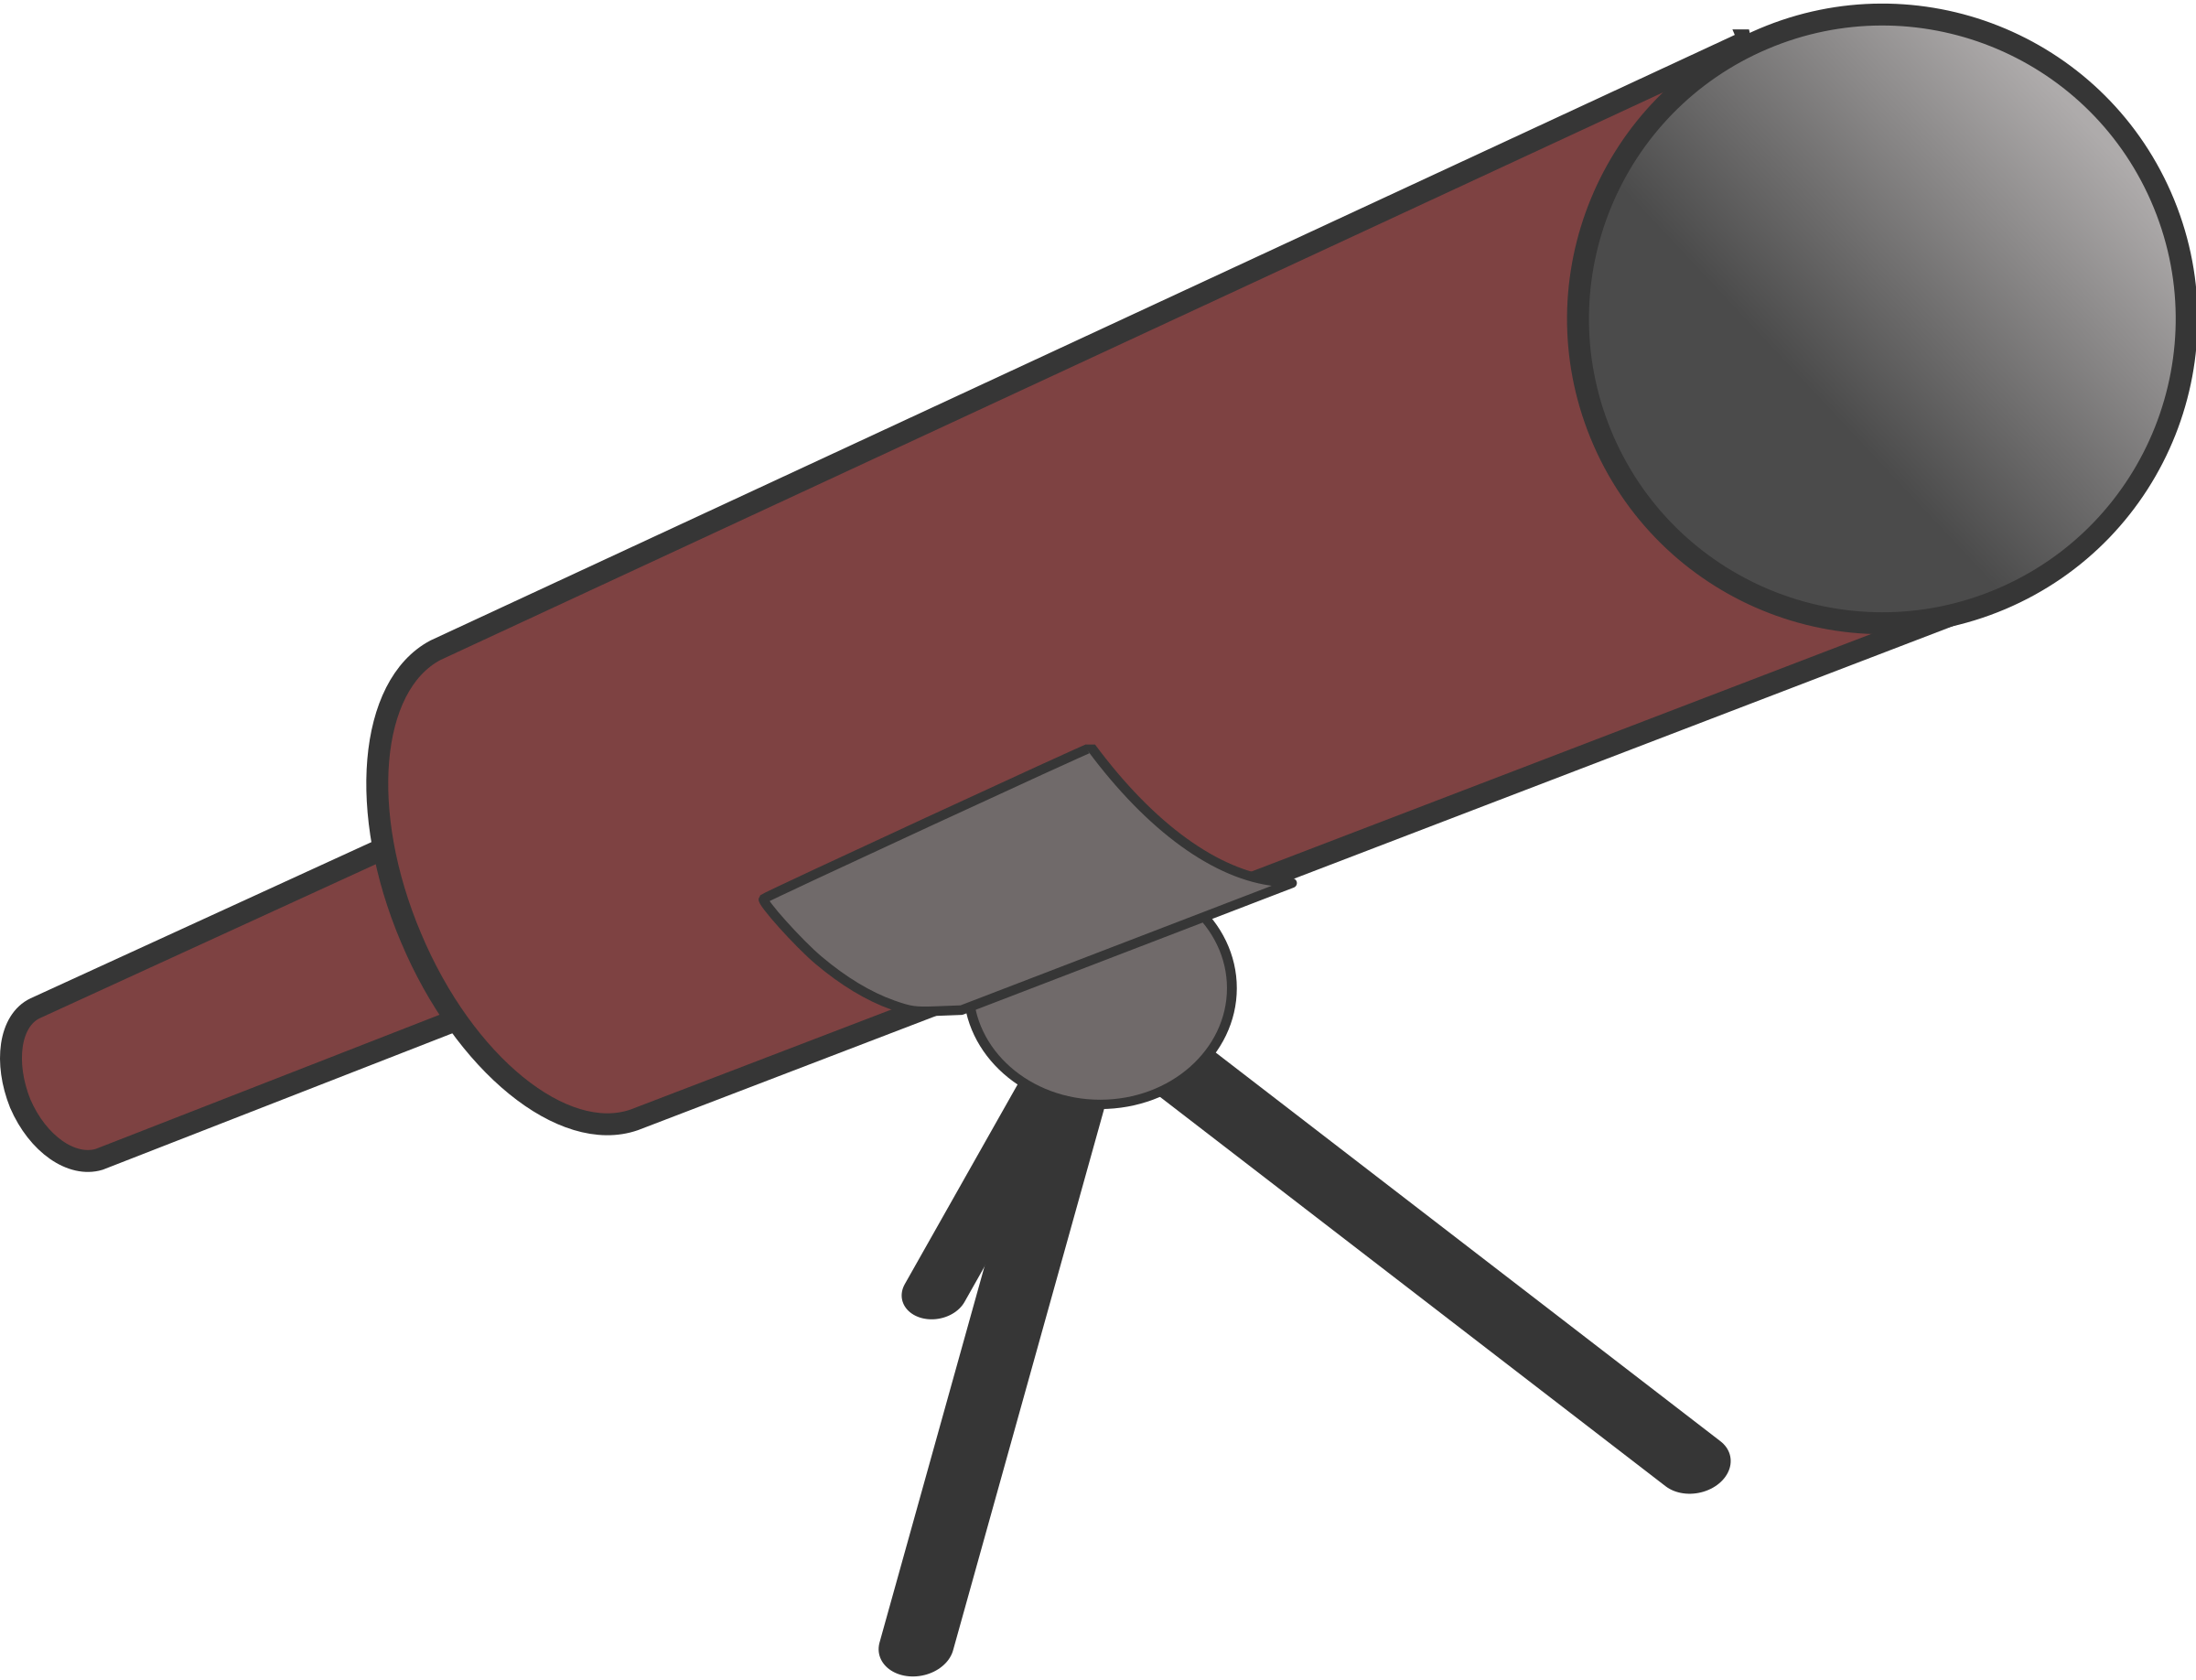 Simple cartoony telescope with tripod by anarres